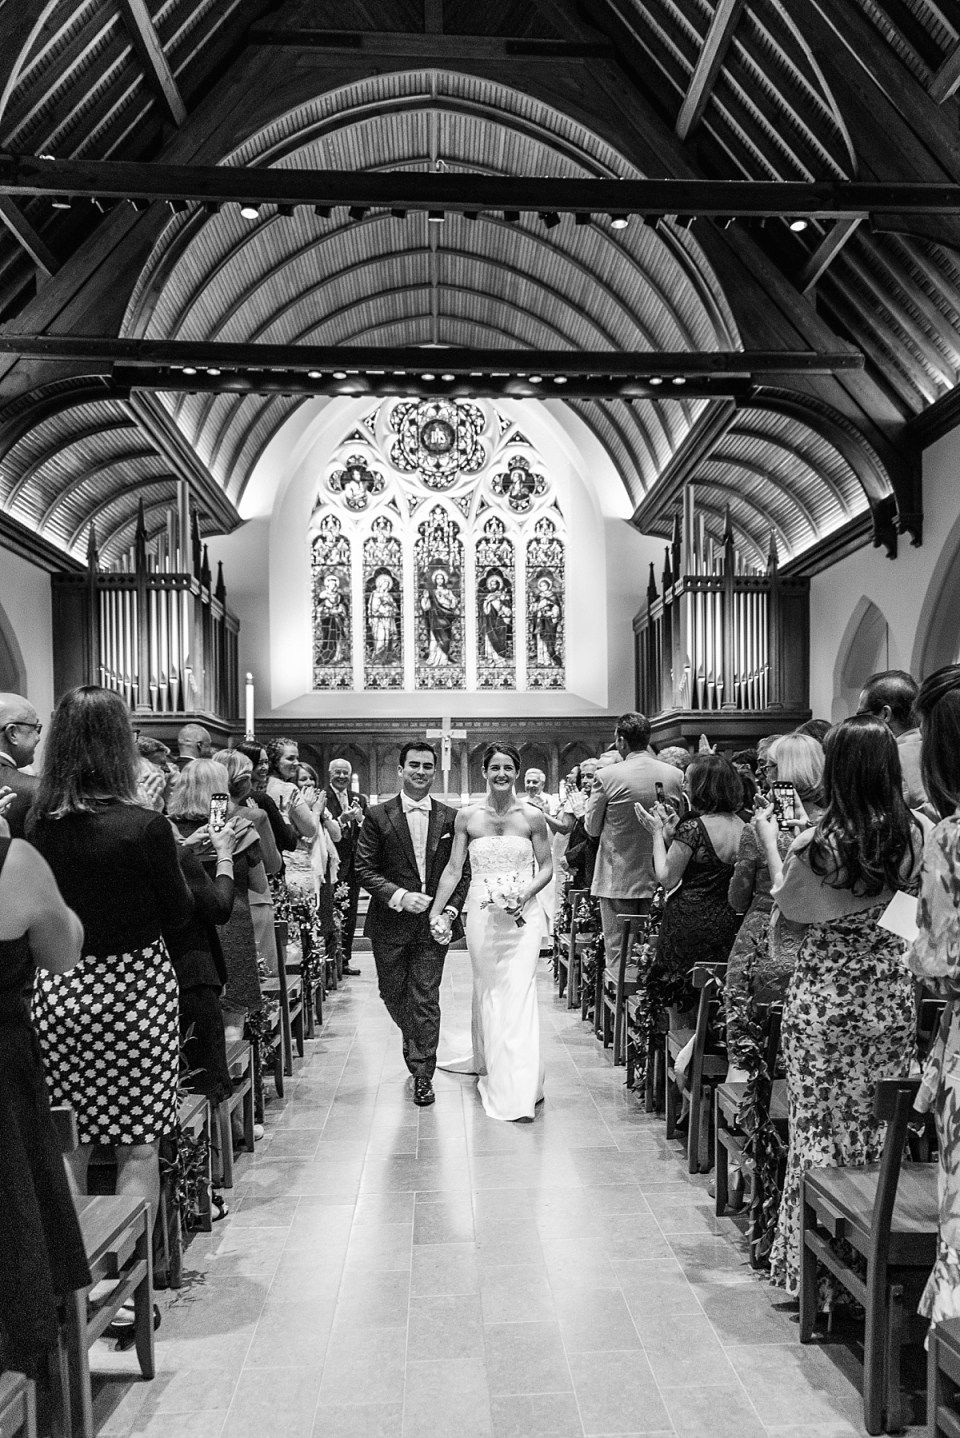 Dahlgren Chapel Wedding at Georgetown University